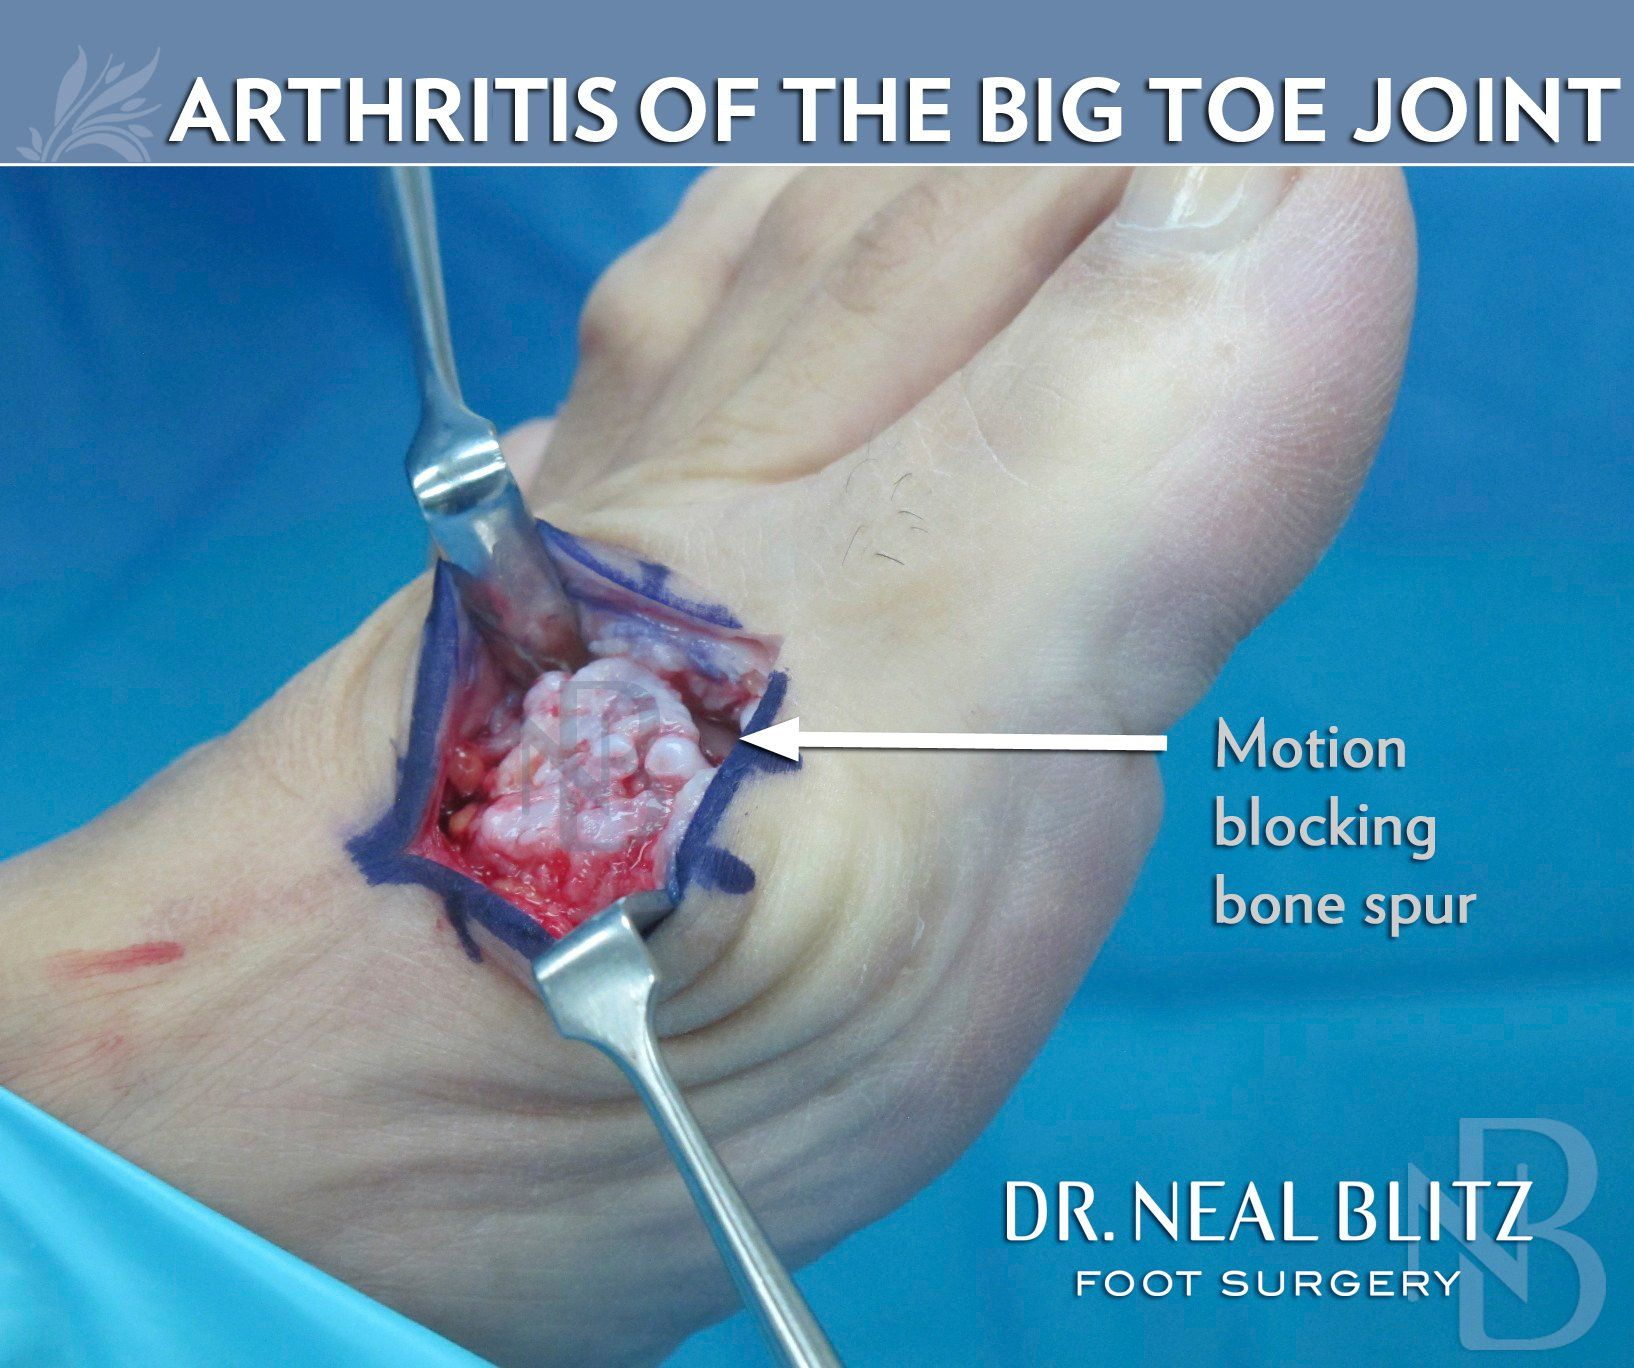 Big Toe Arthritis Surgery – Learn about Symptoms & Treatment